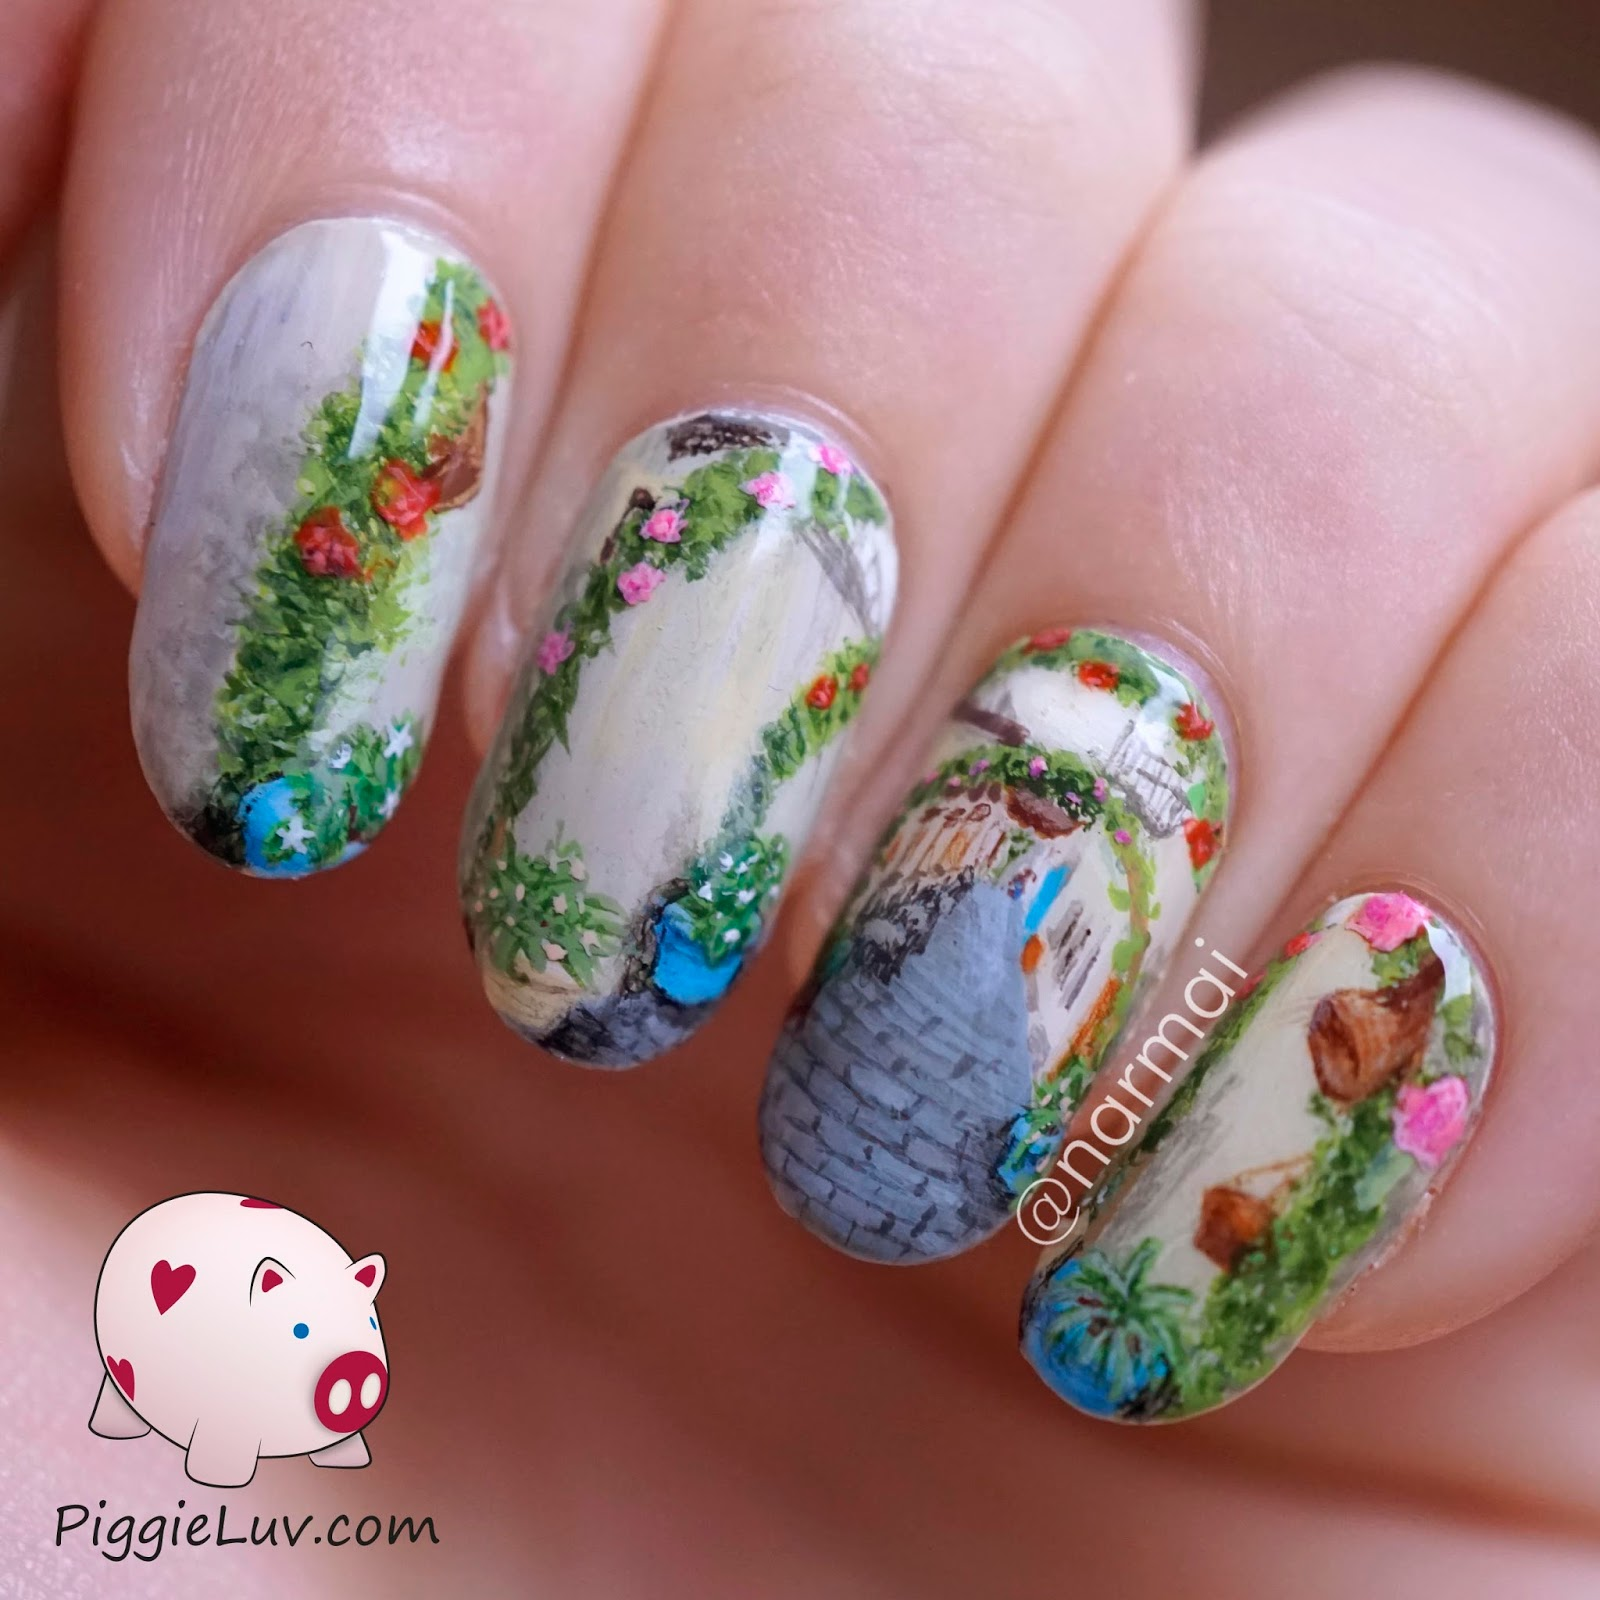 PiggieLuv: Rose alley nail art